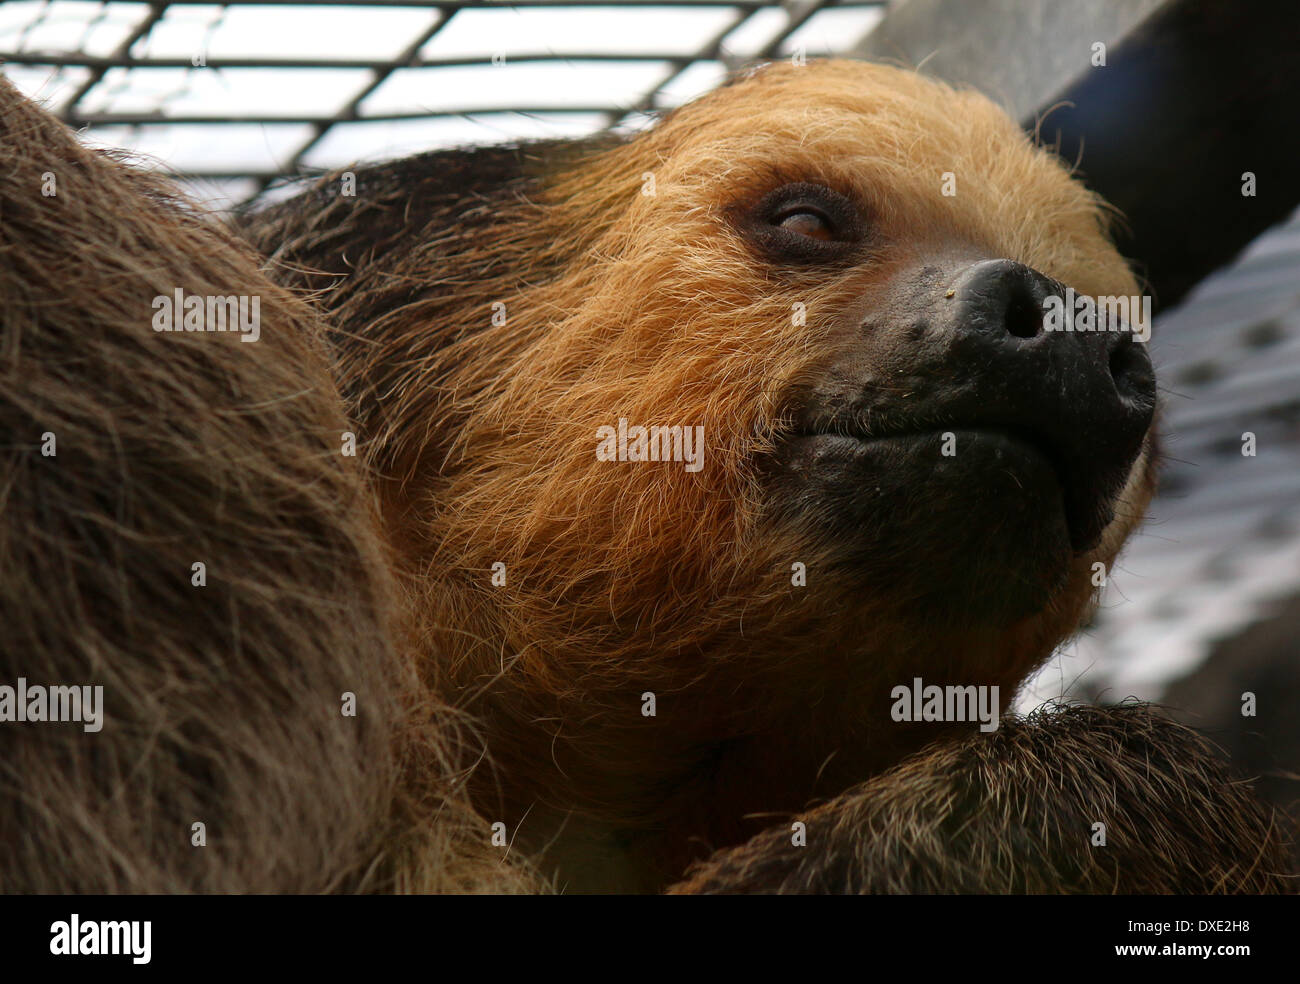 Hoffmann's two-toed sloth (Choloepus hoffmanni) close-up of the head, captive animal at Loro Parque Zoo, Tenerife, Spain Stock Photo